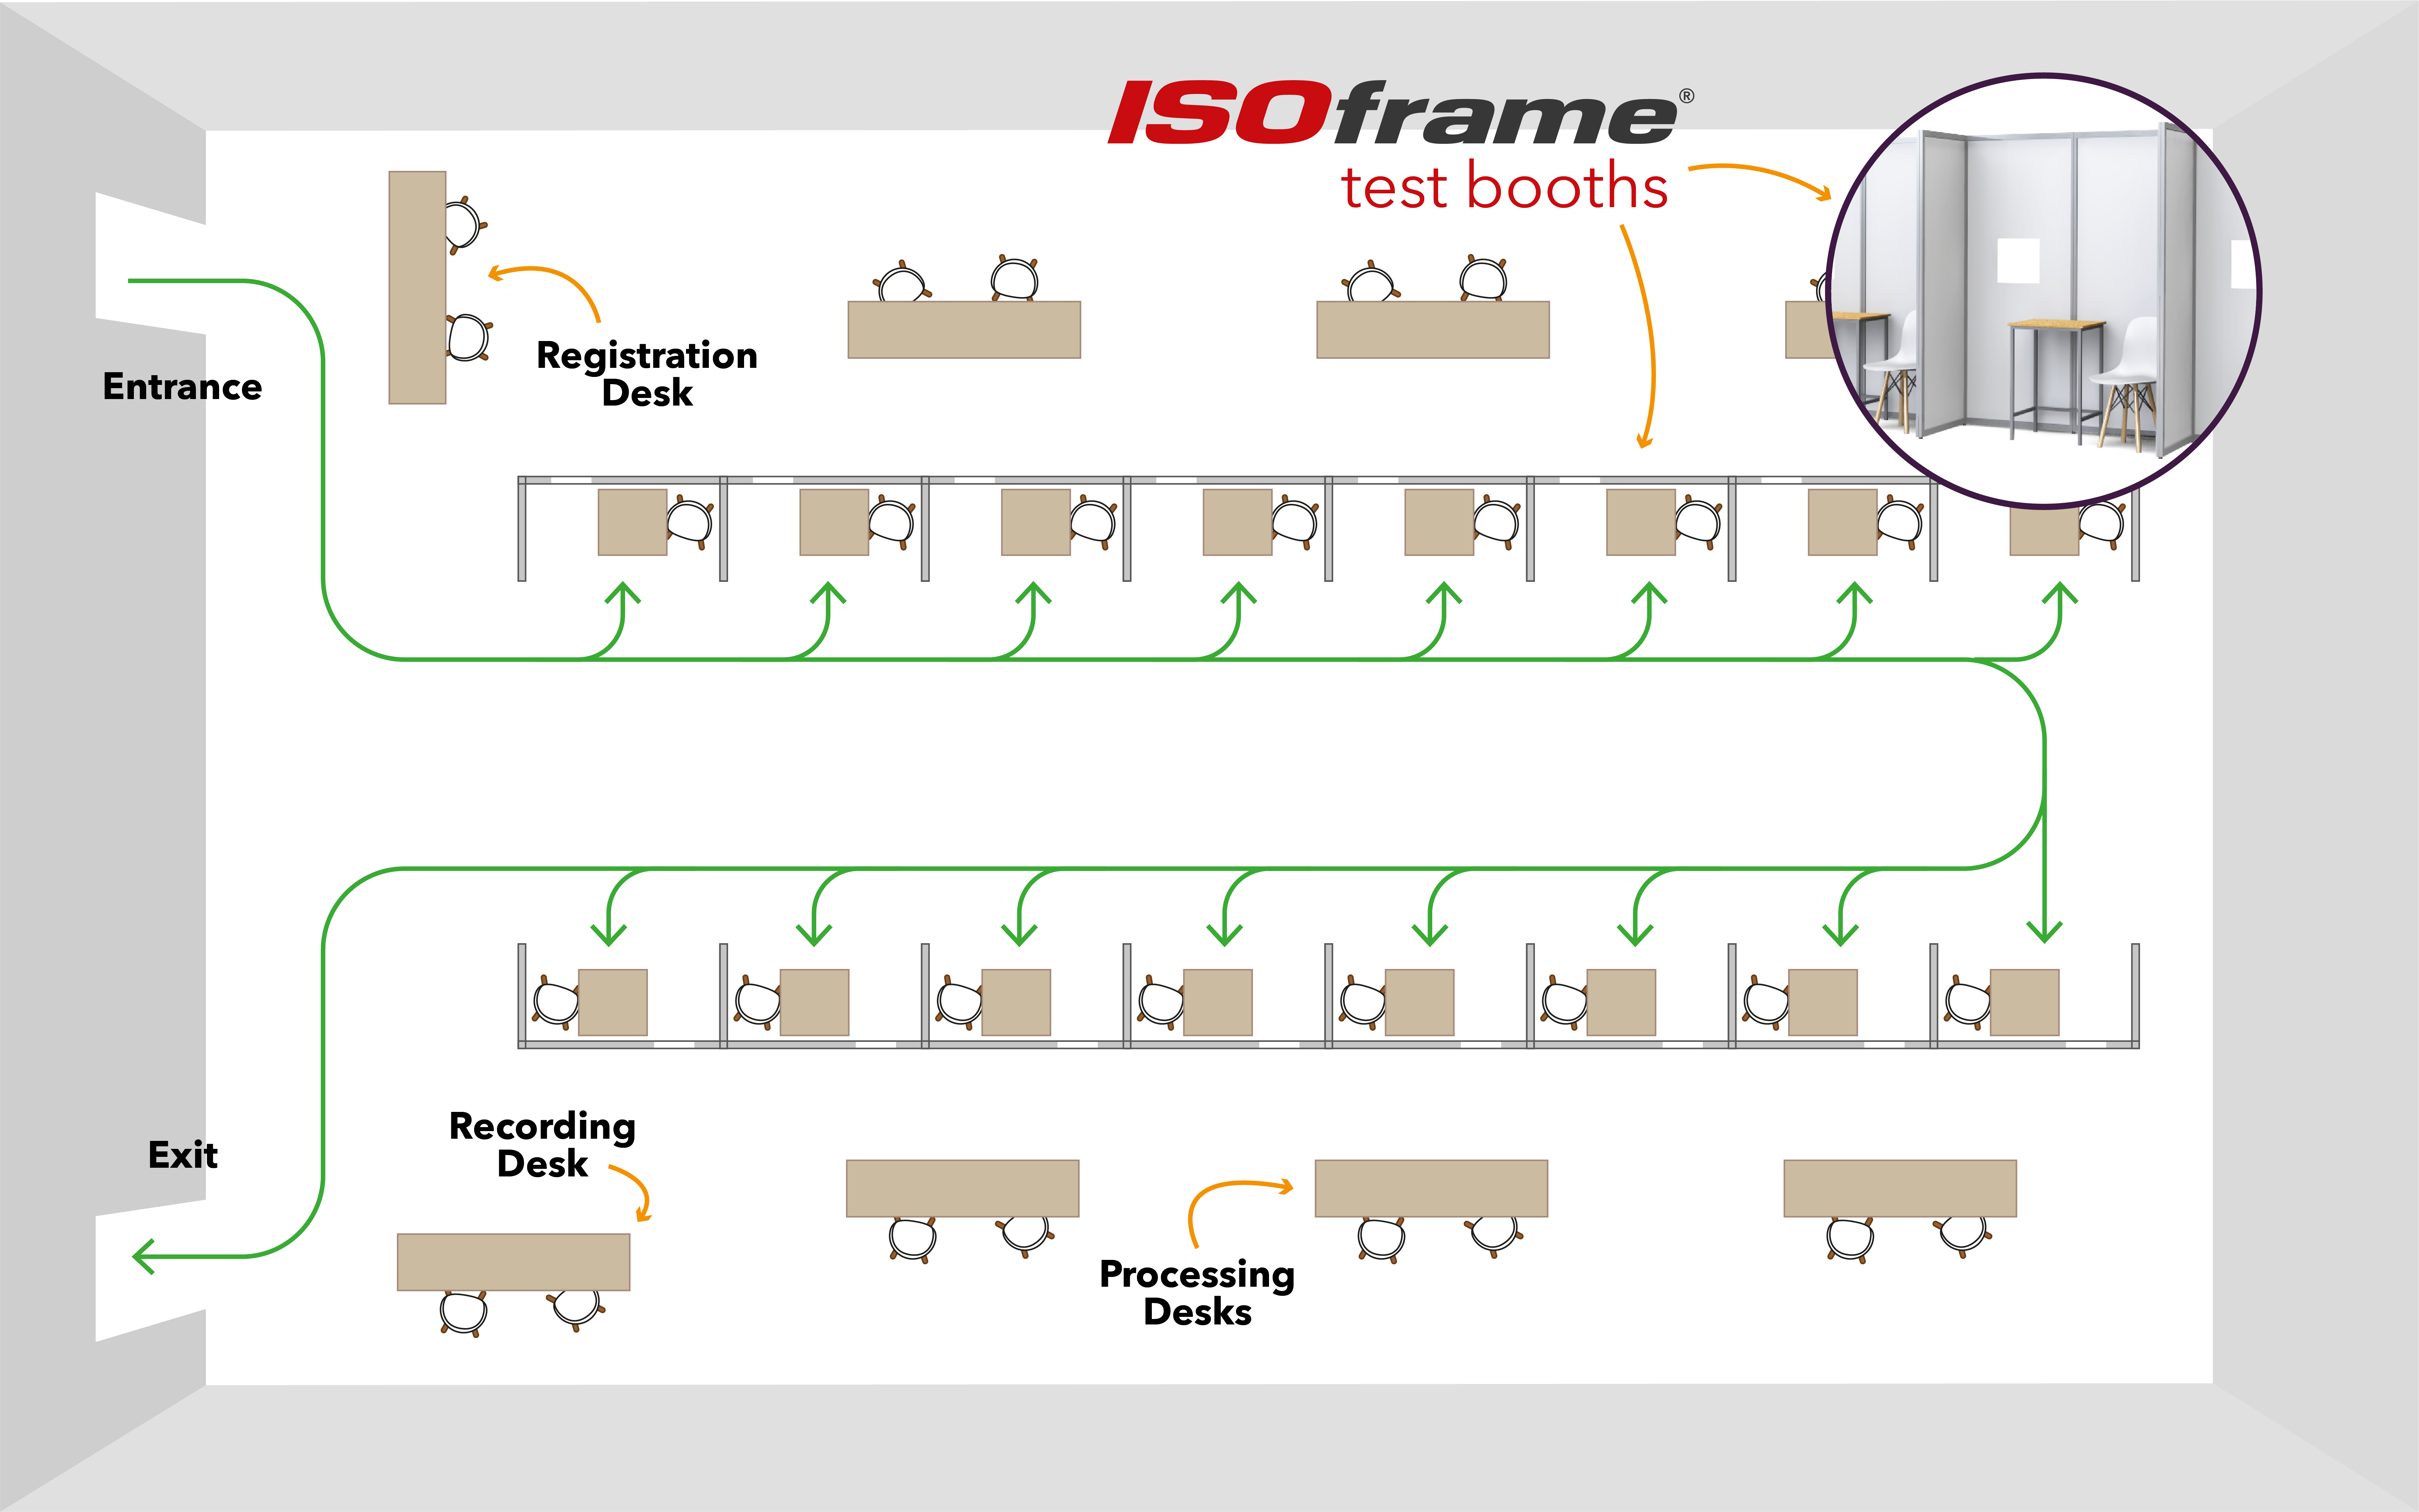 ISOframe Covid Test Booths layout